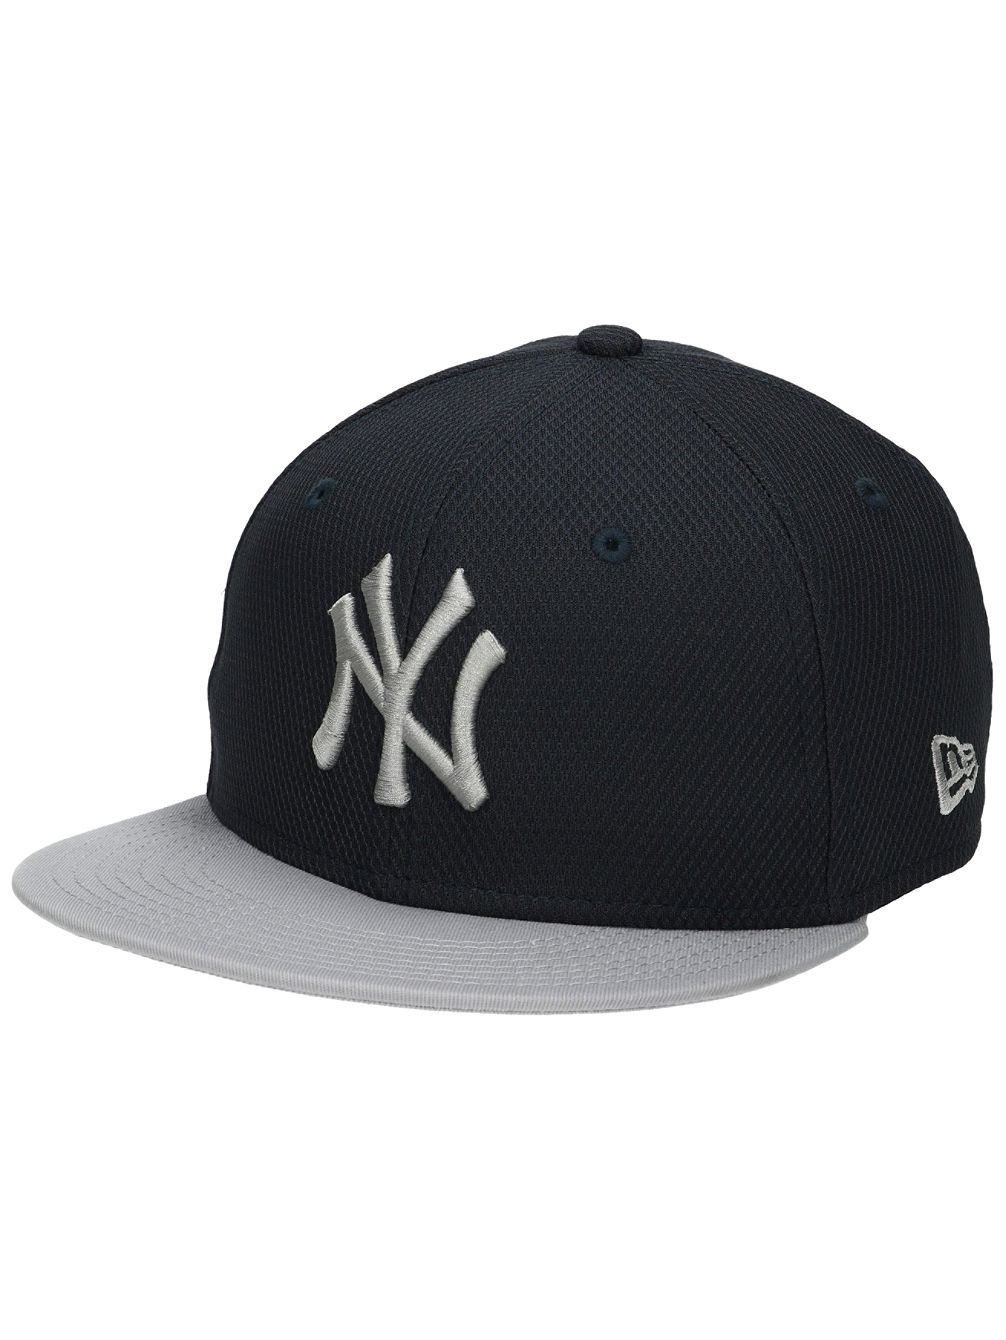 Kids Diamond Era Contrast Cap Youth